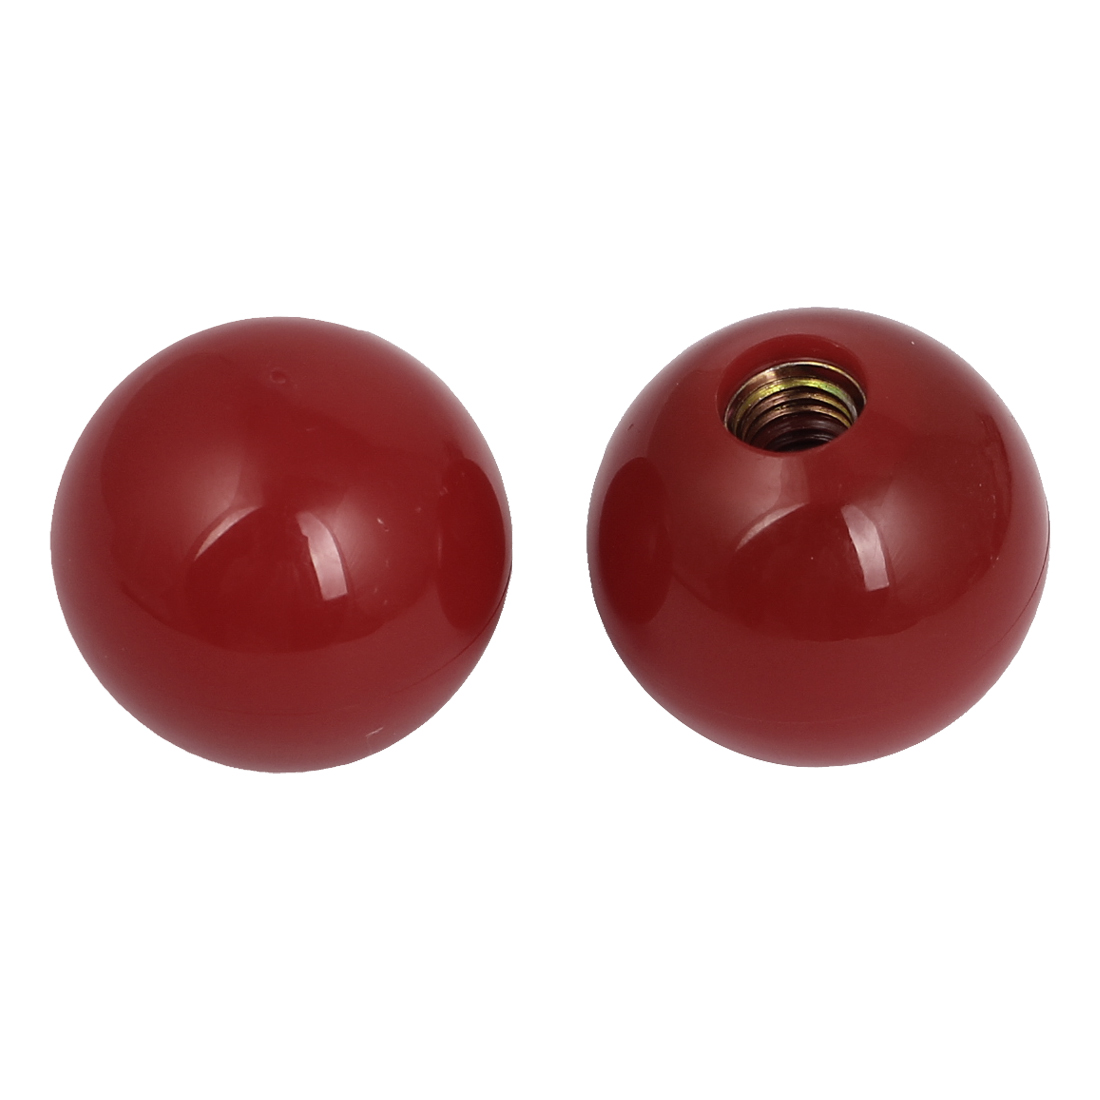 Machine Tool Handle M10 Thread Bore 38mm Diameter Red Plastic Ball Knobs 2 Pcs